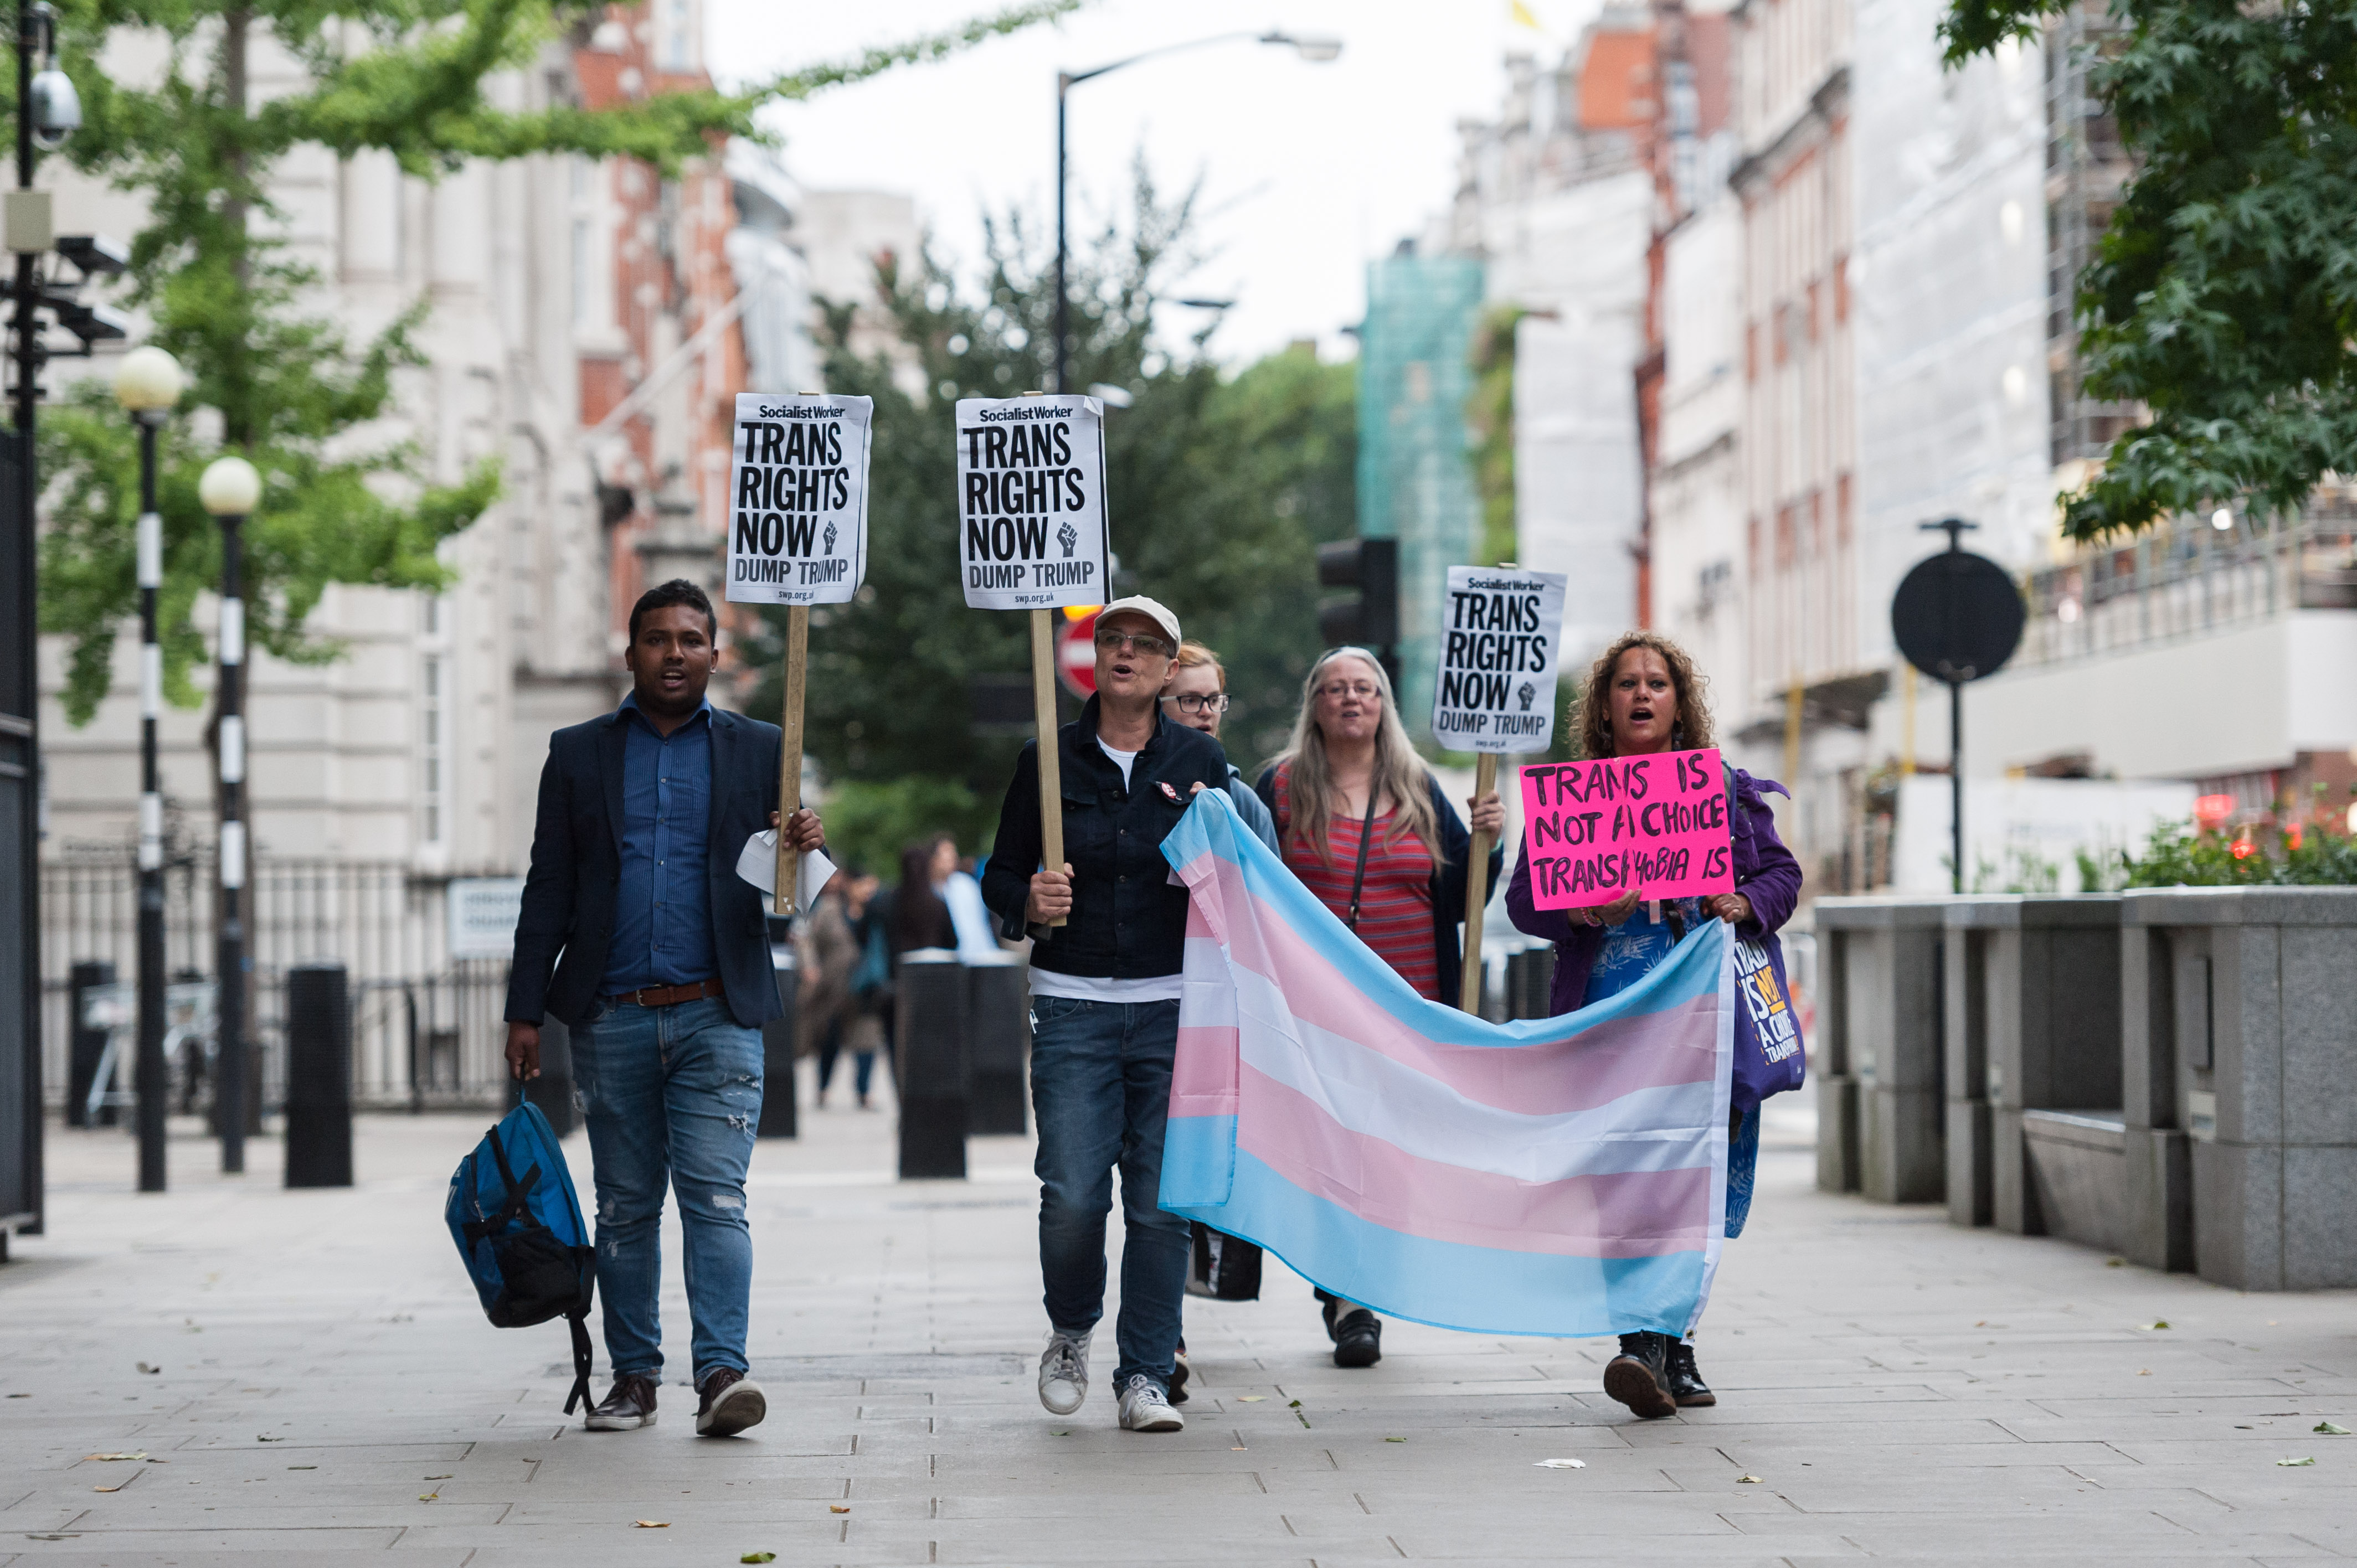 A group of demonstrators gather in front of the U.S. Embassy to protest against Donald Trump's latest announcement that transgender troops will not be allowed to serve in any capacity in the US military on July 28, 2017 in London, England.